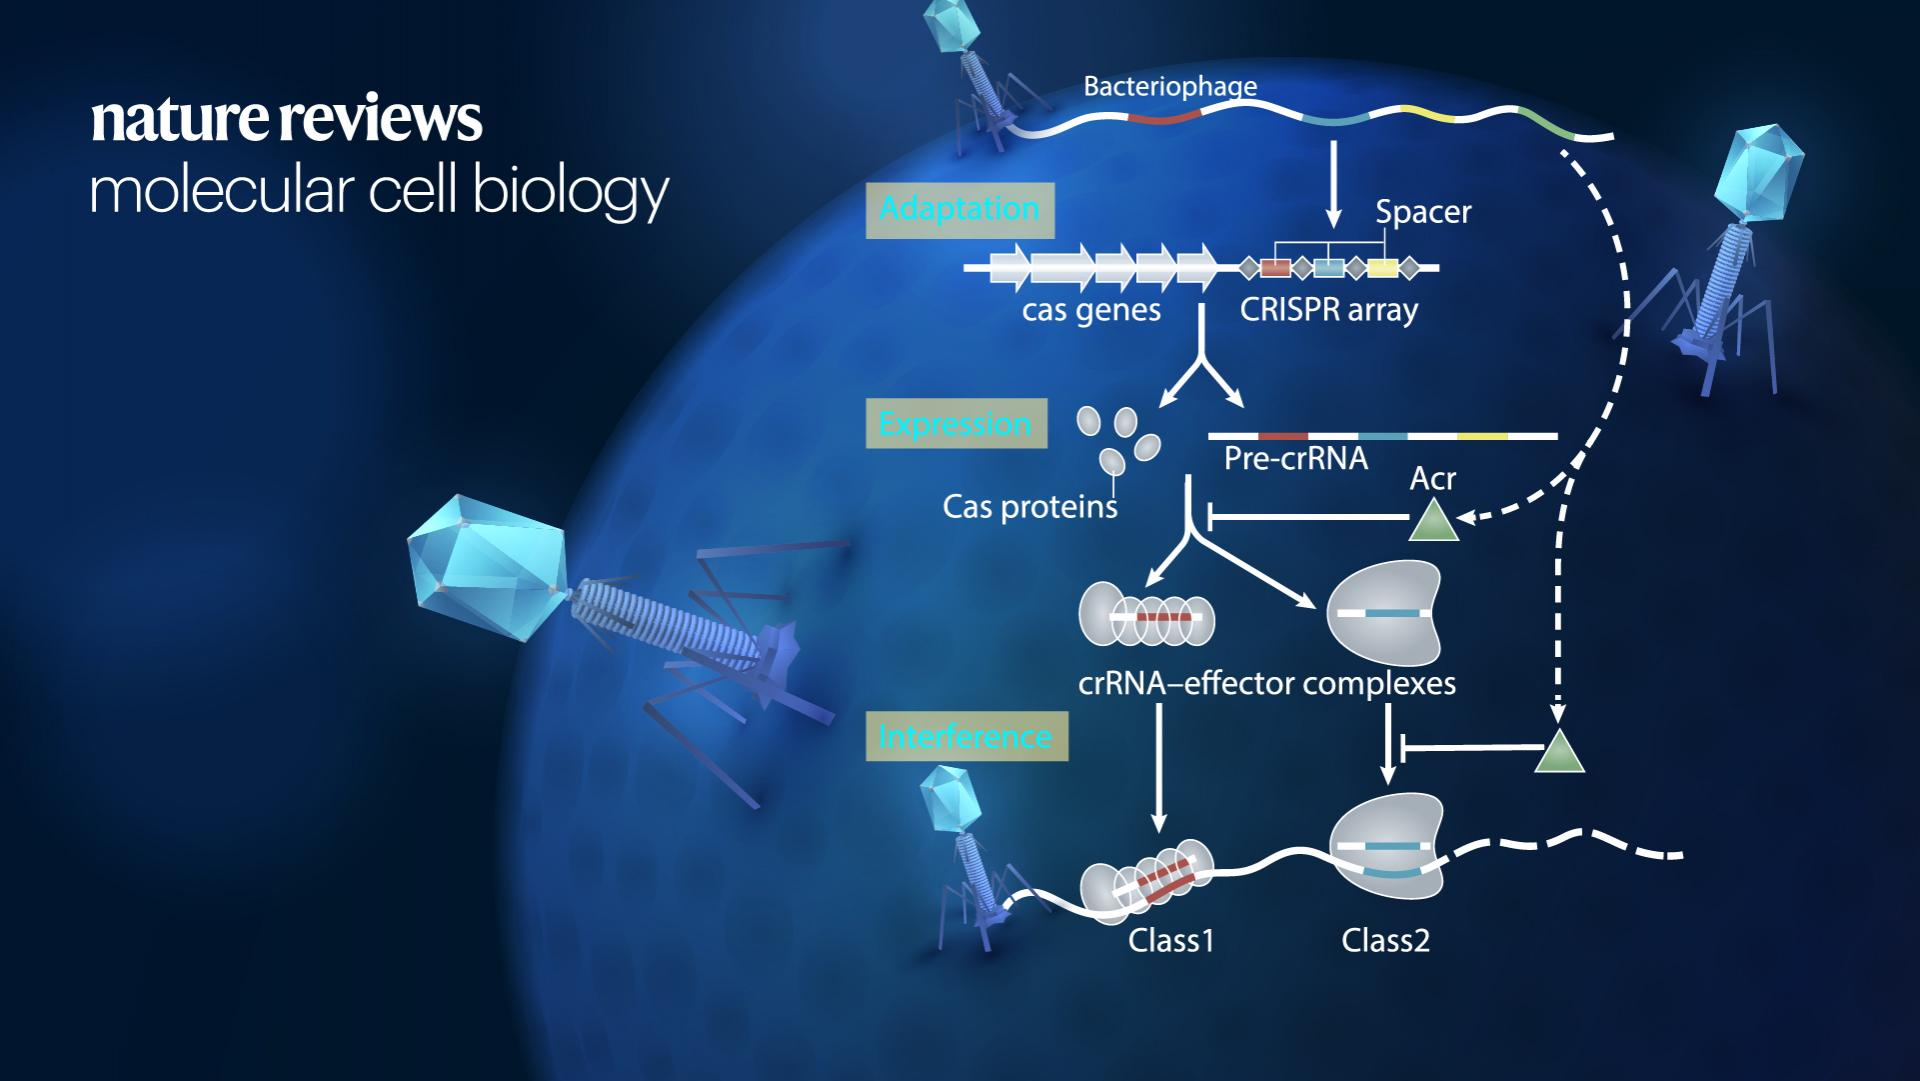 SUSTech's Ning Jia et al. publish research review about mechanisms and biotechnology applications of anti-CRISPR proteins